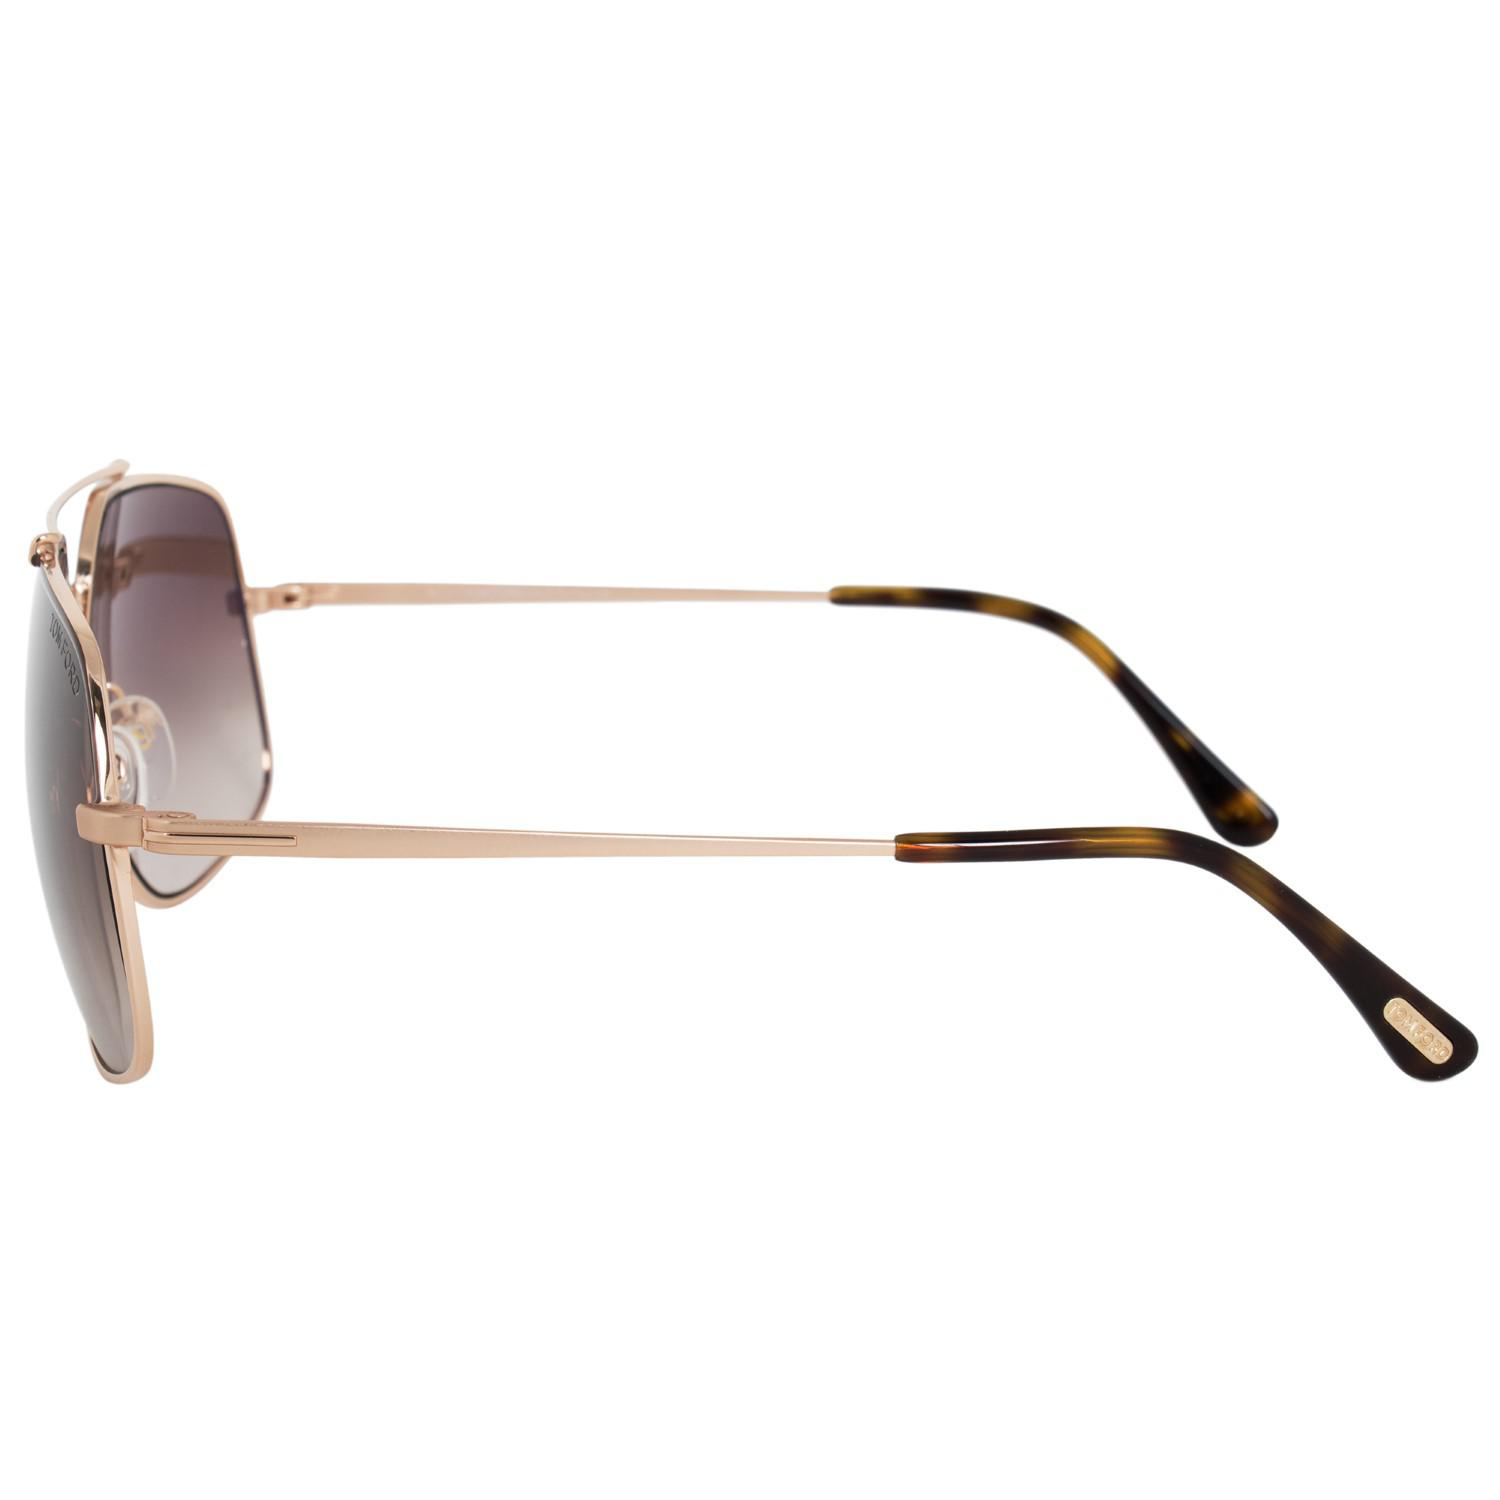 05a6ac1e0b Tom Ford Ft0439 Ronnie Aviator Sunglasses in Brown - Lyst